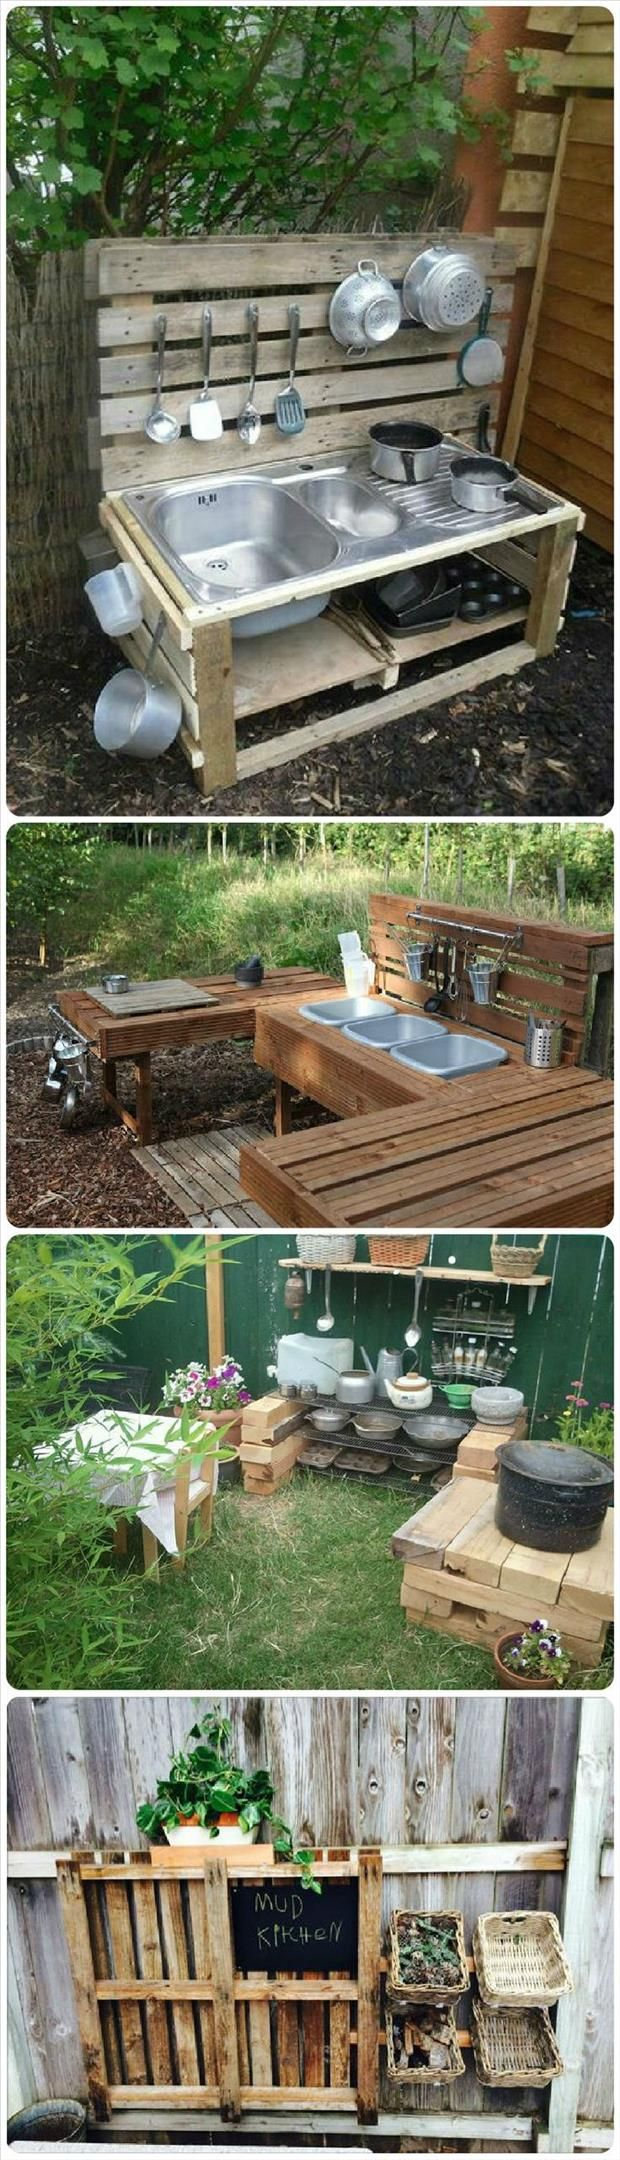 Kinderspielküchen Amazing Uses For Old Pallets 20 Pics Cottage Ideat Backyard